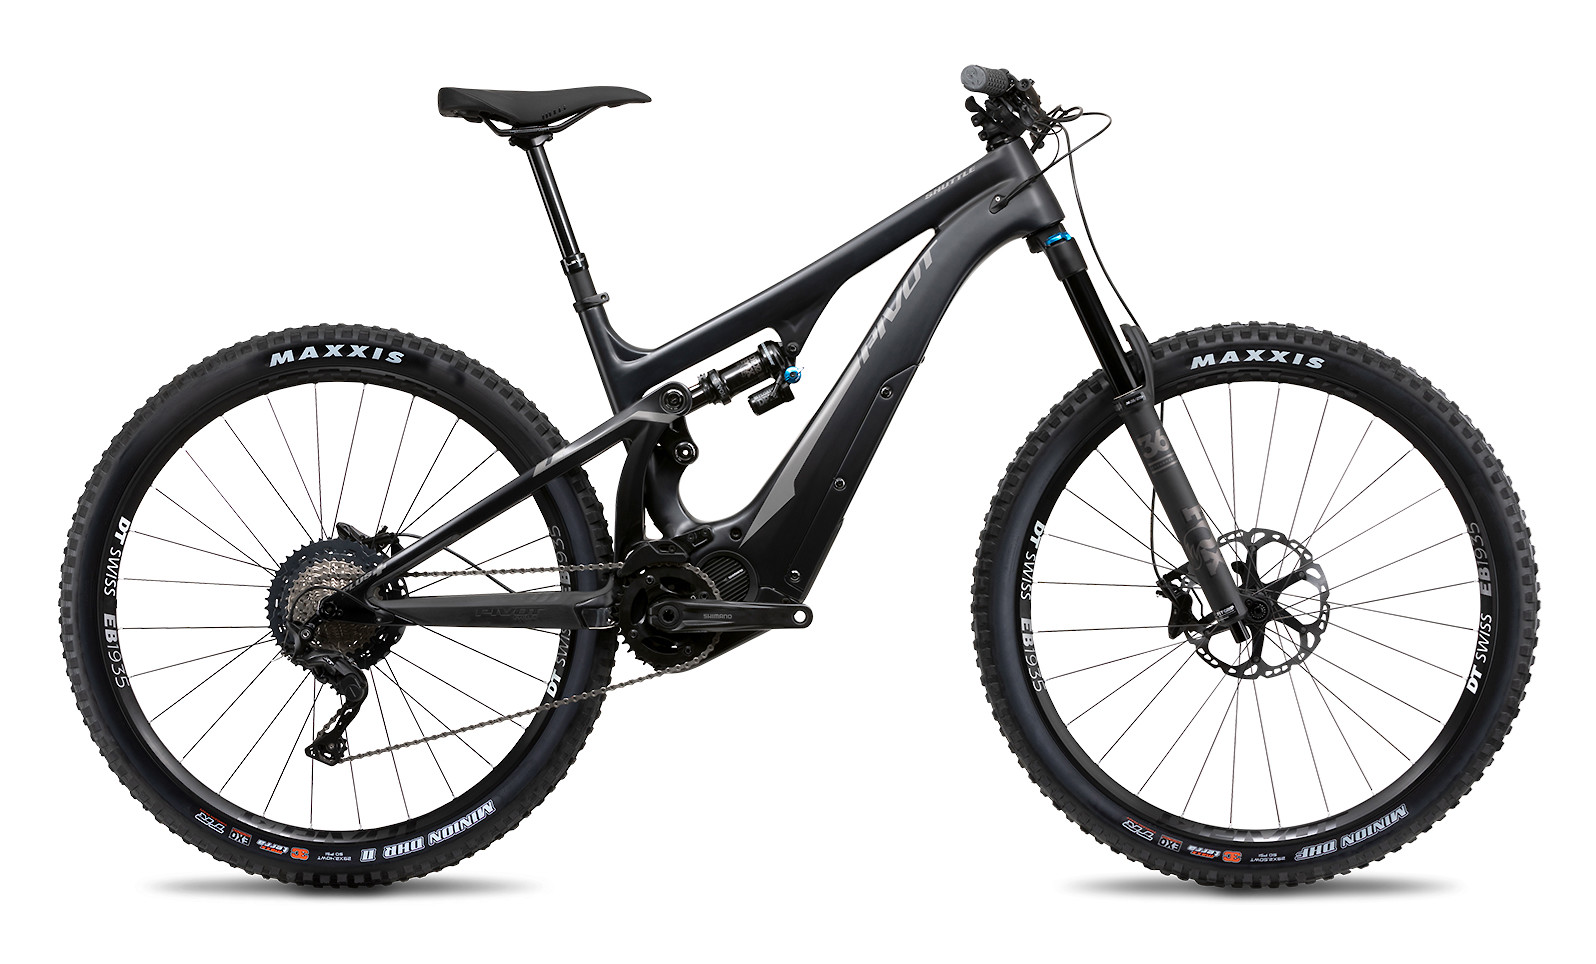 2020 Pivot Shuttle in Black with Sterling Silver (Race XT build pictured)